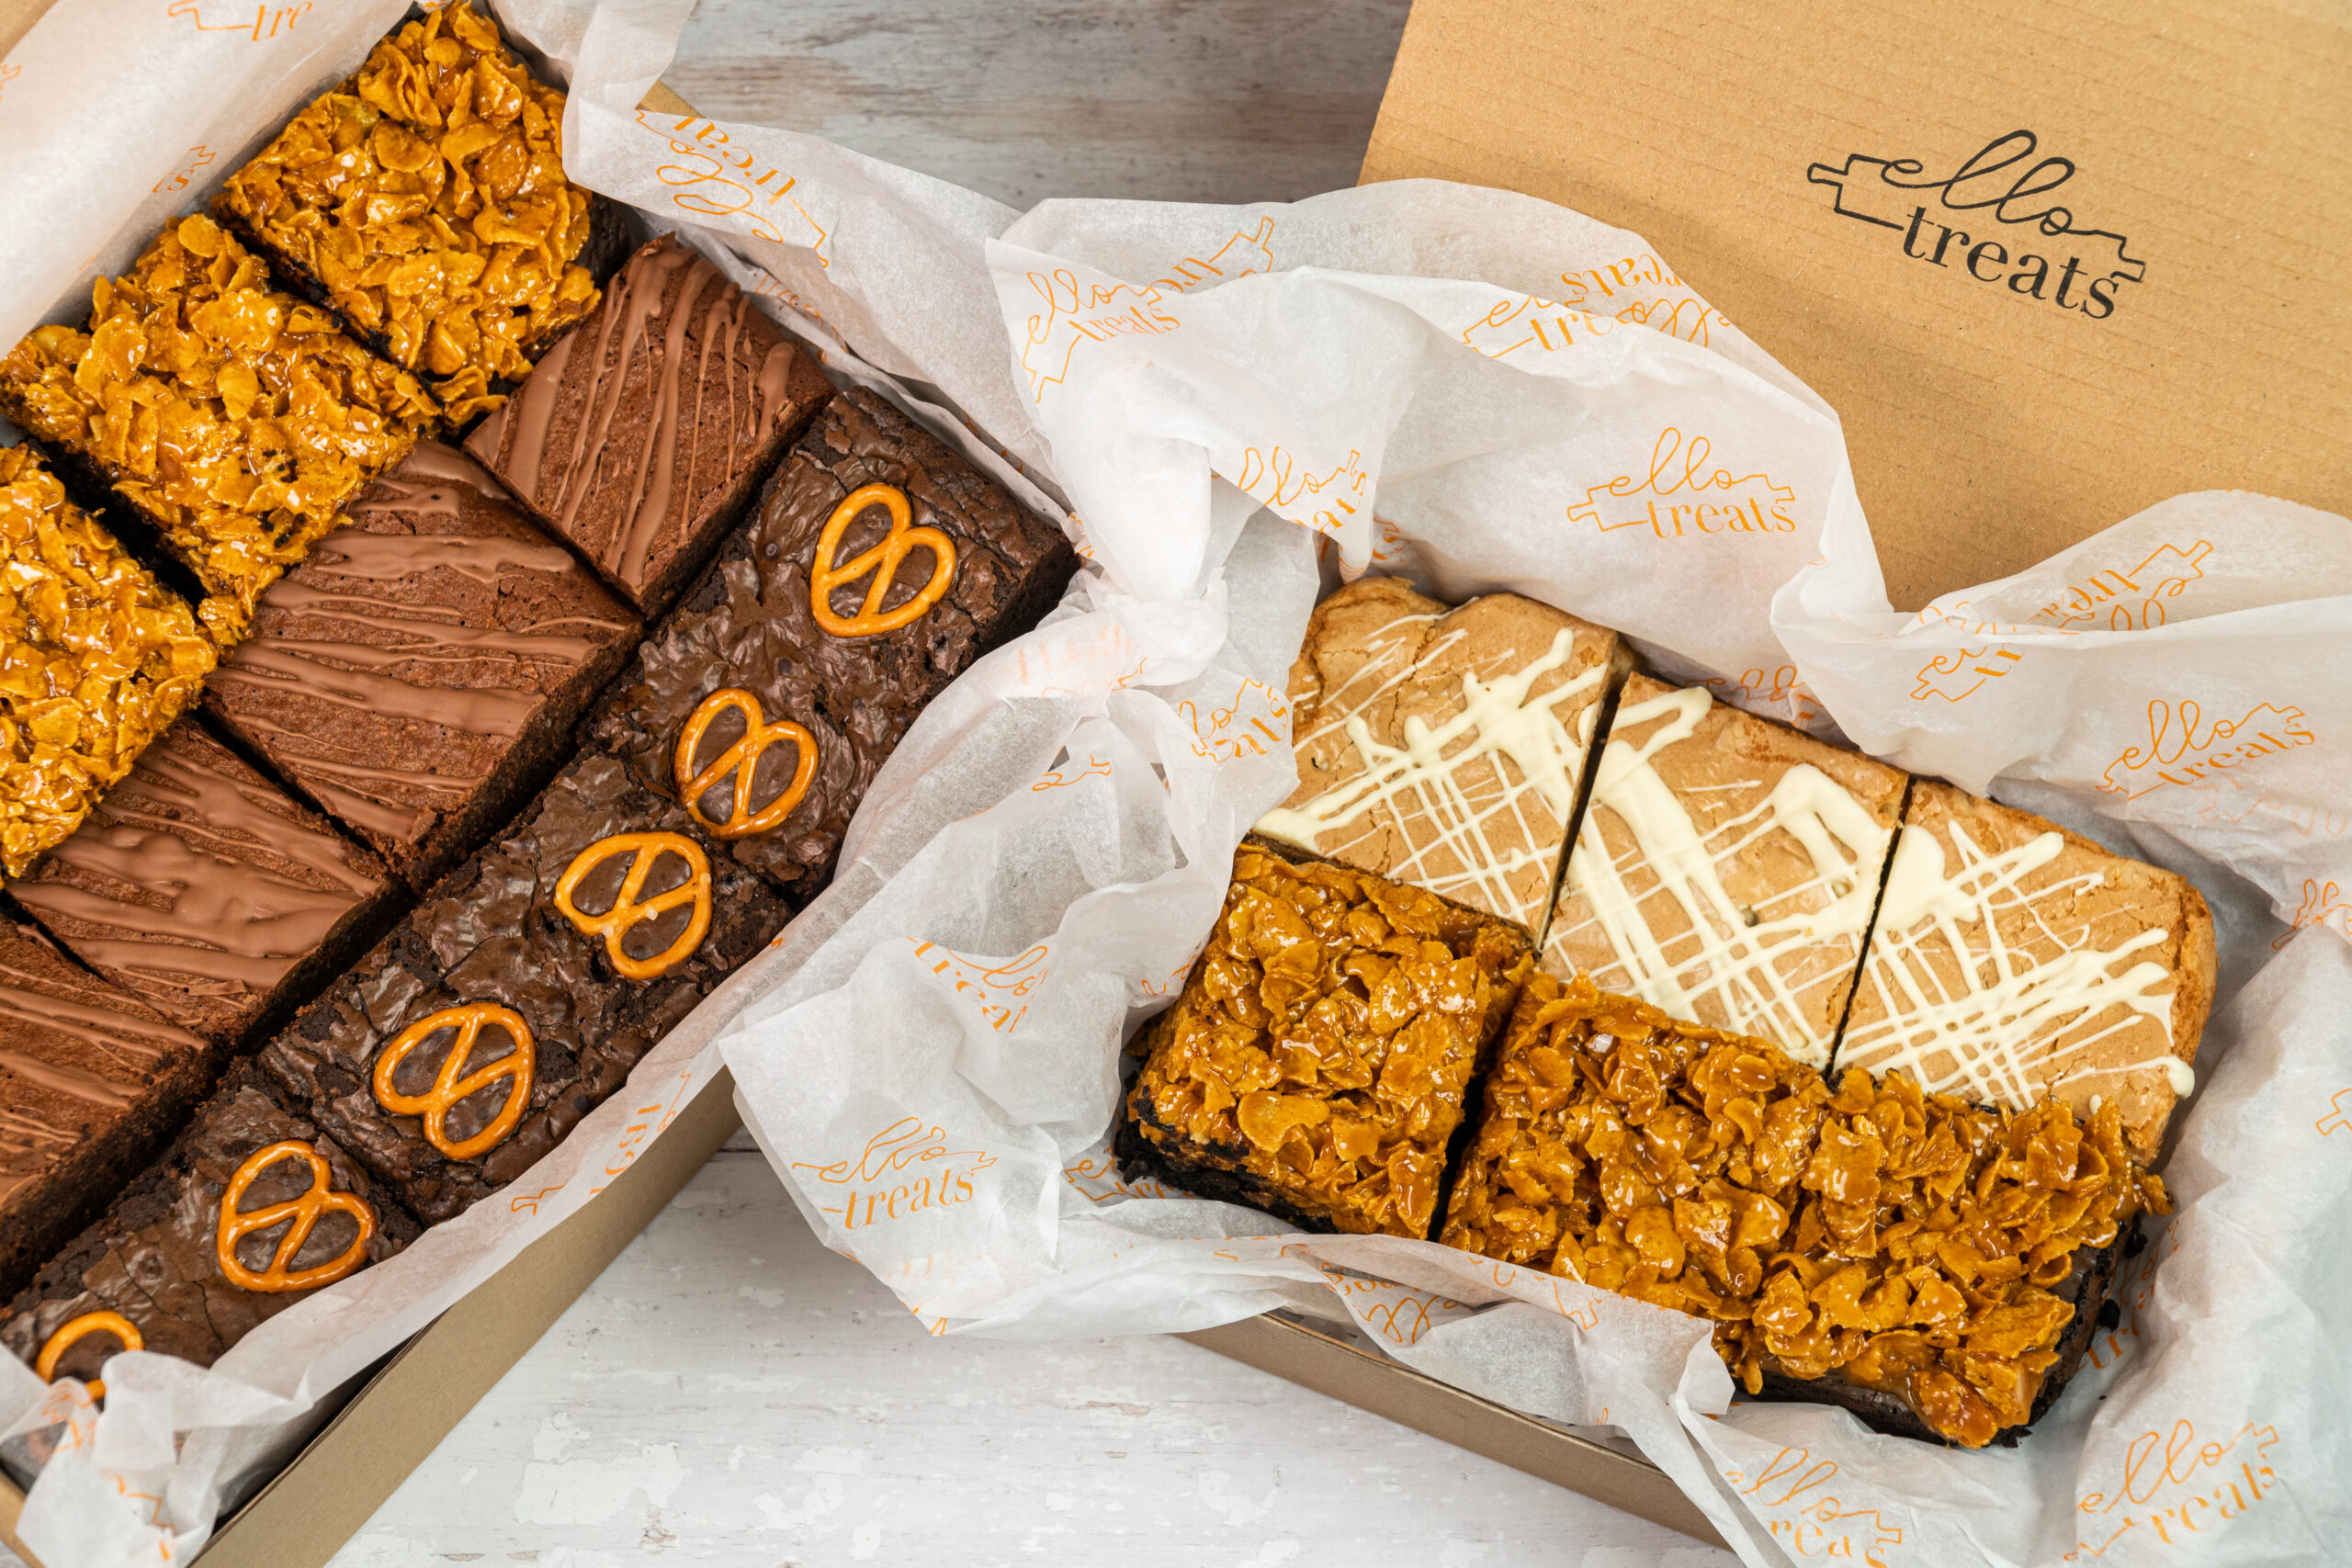 2 boxes of loaded brownie, taken at a high level to show the boxes and their tissue paper